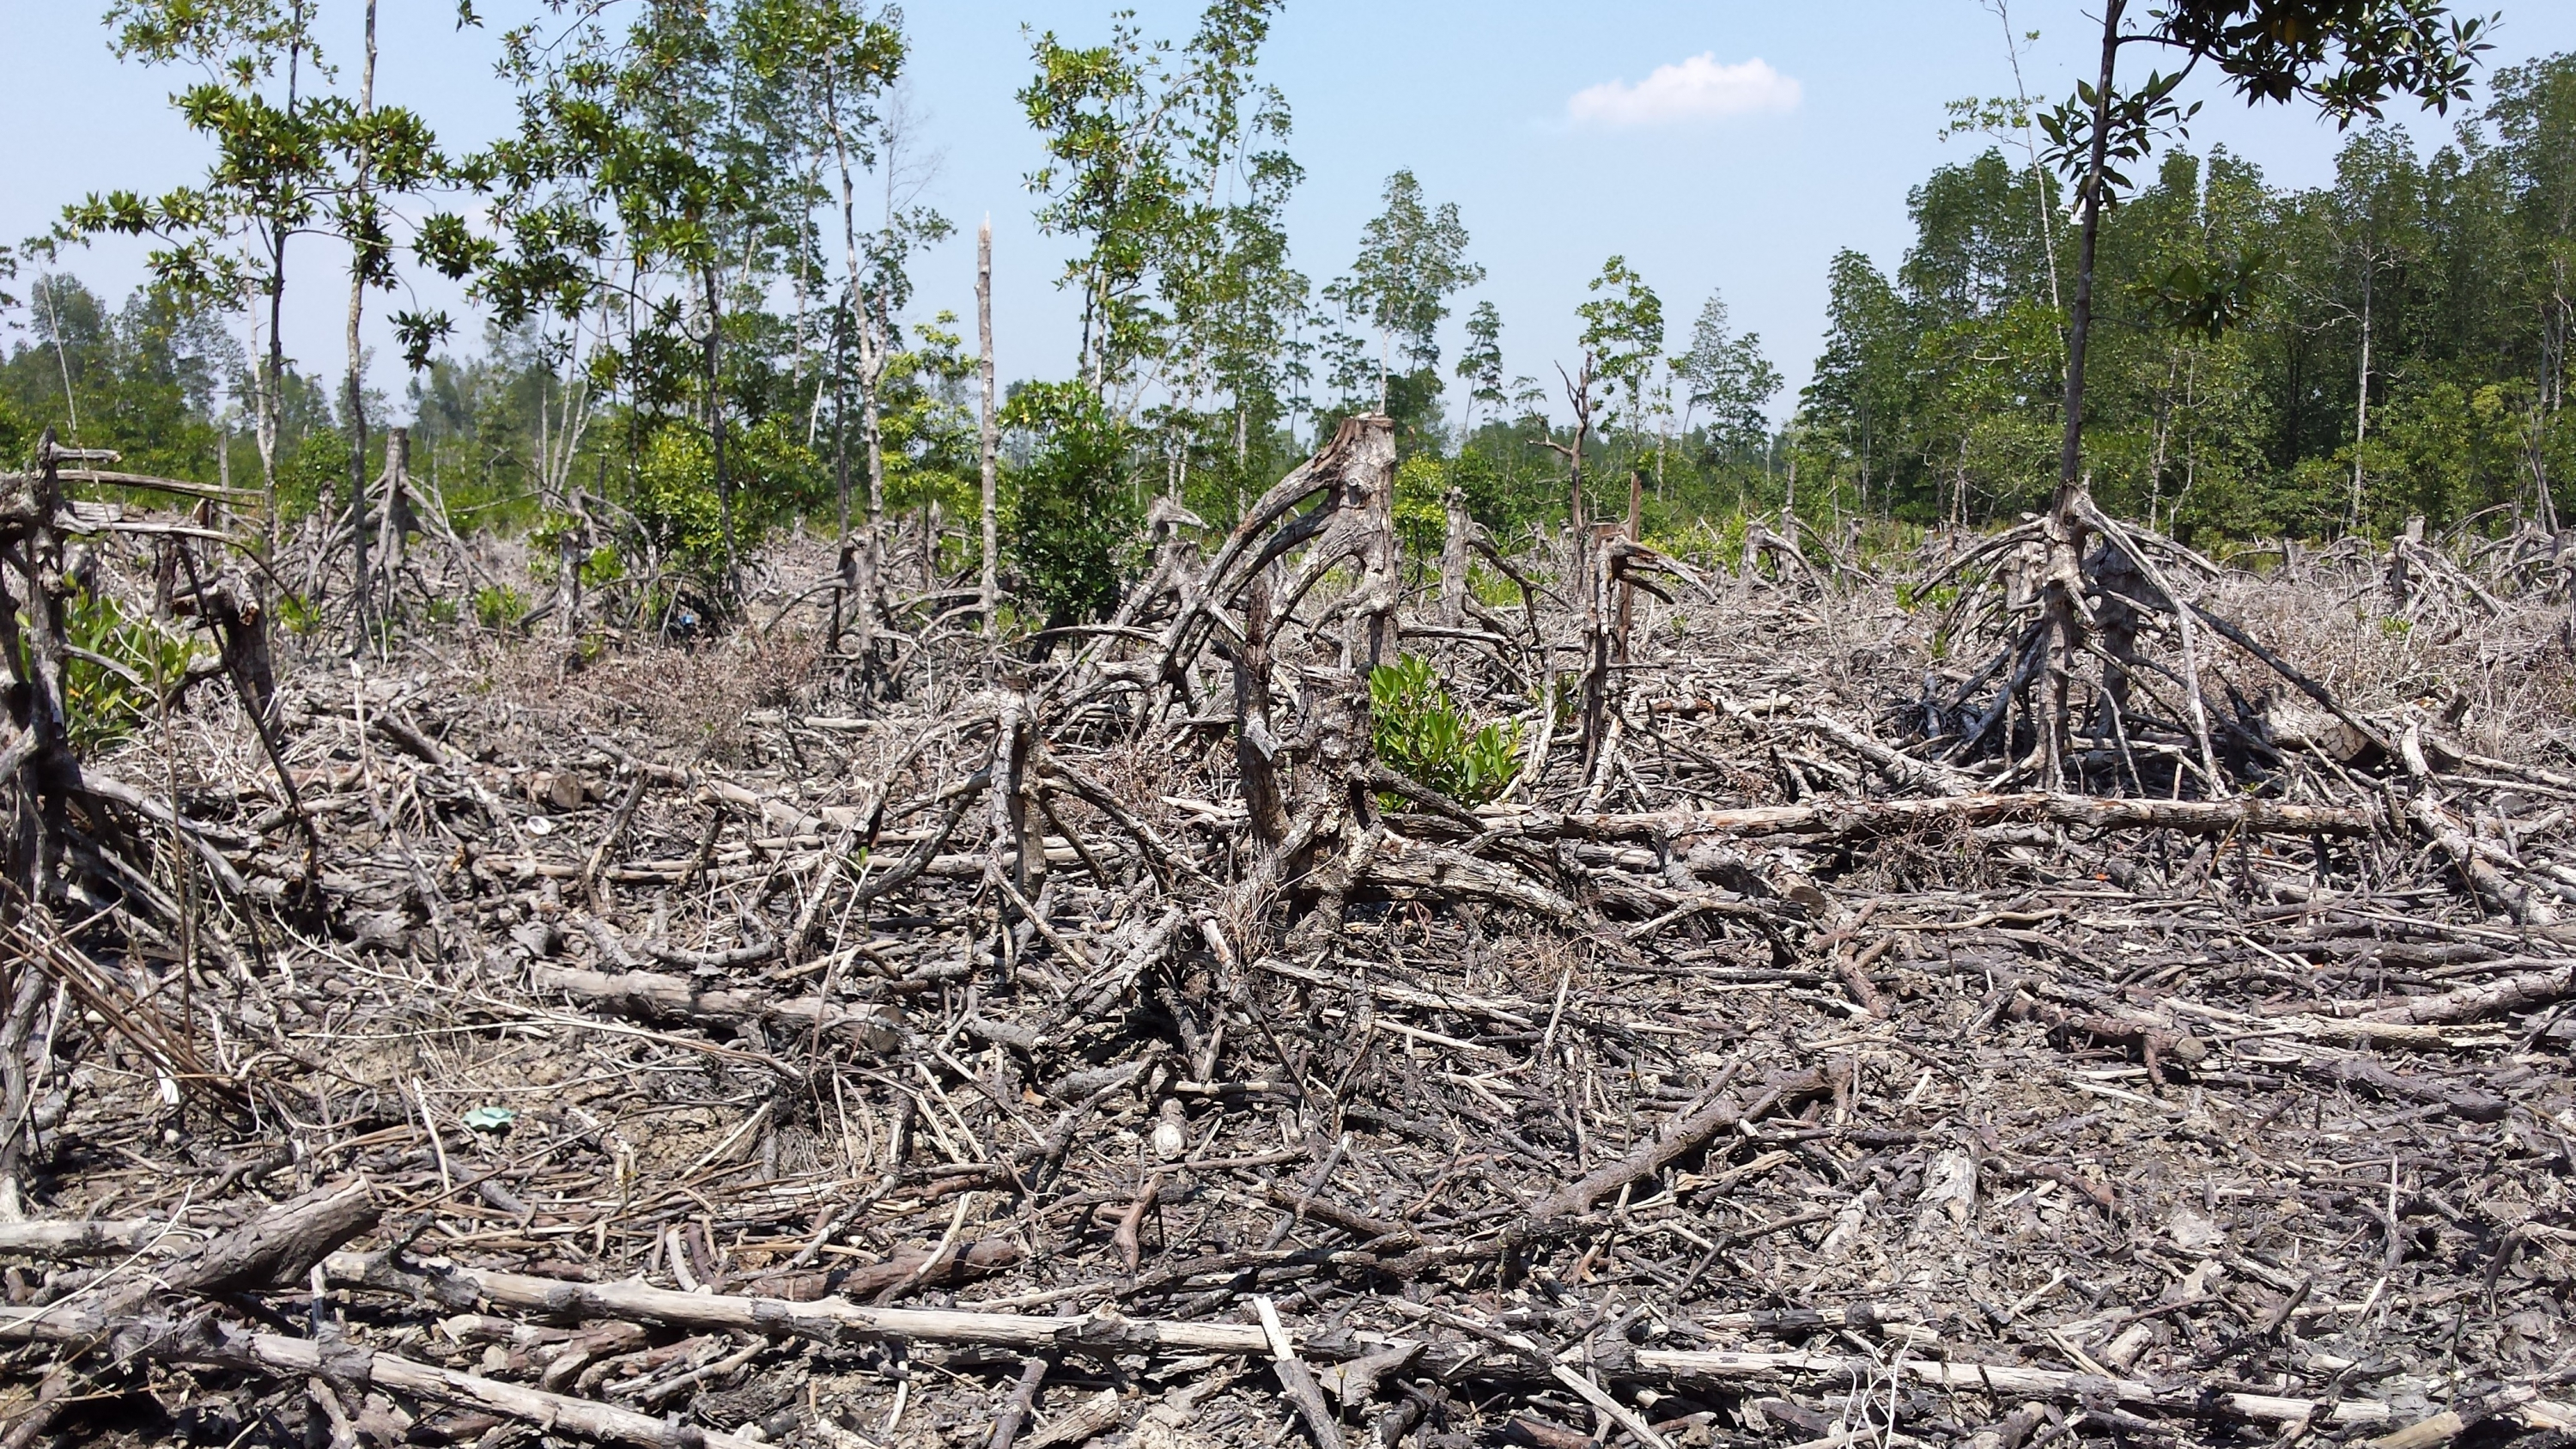 Mangrove clearing is a common scene in Southeast Asia.